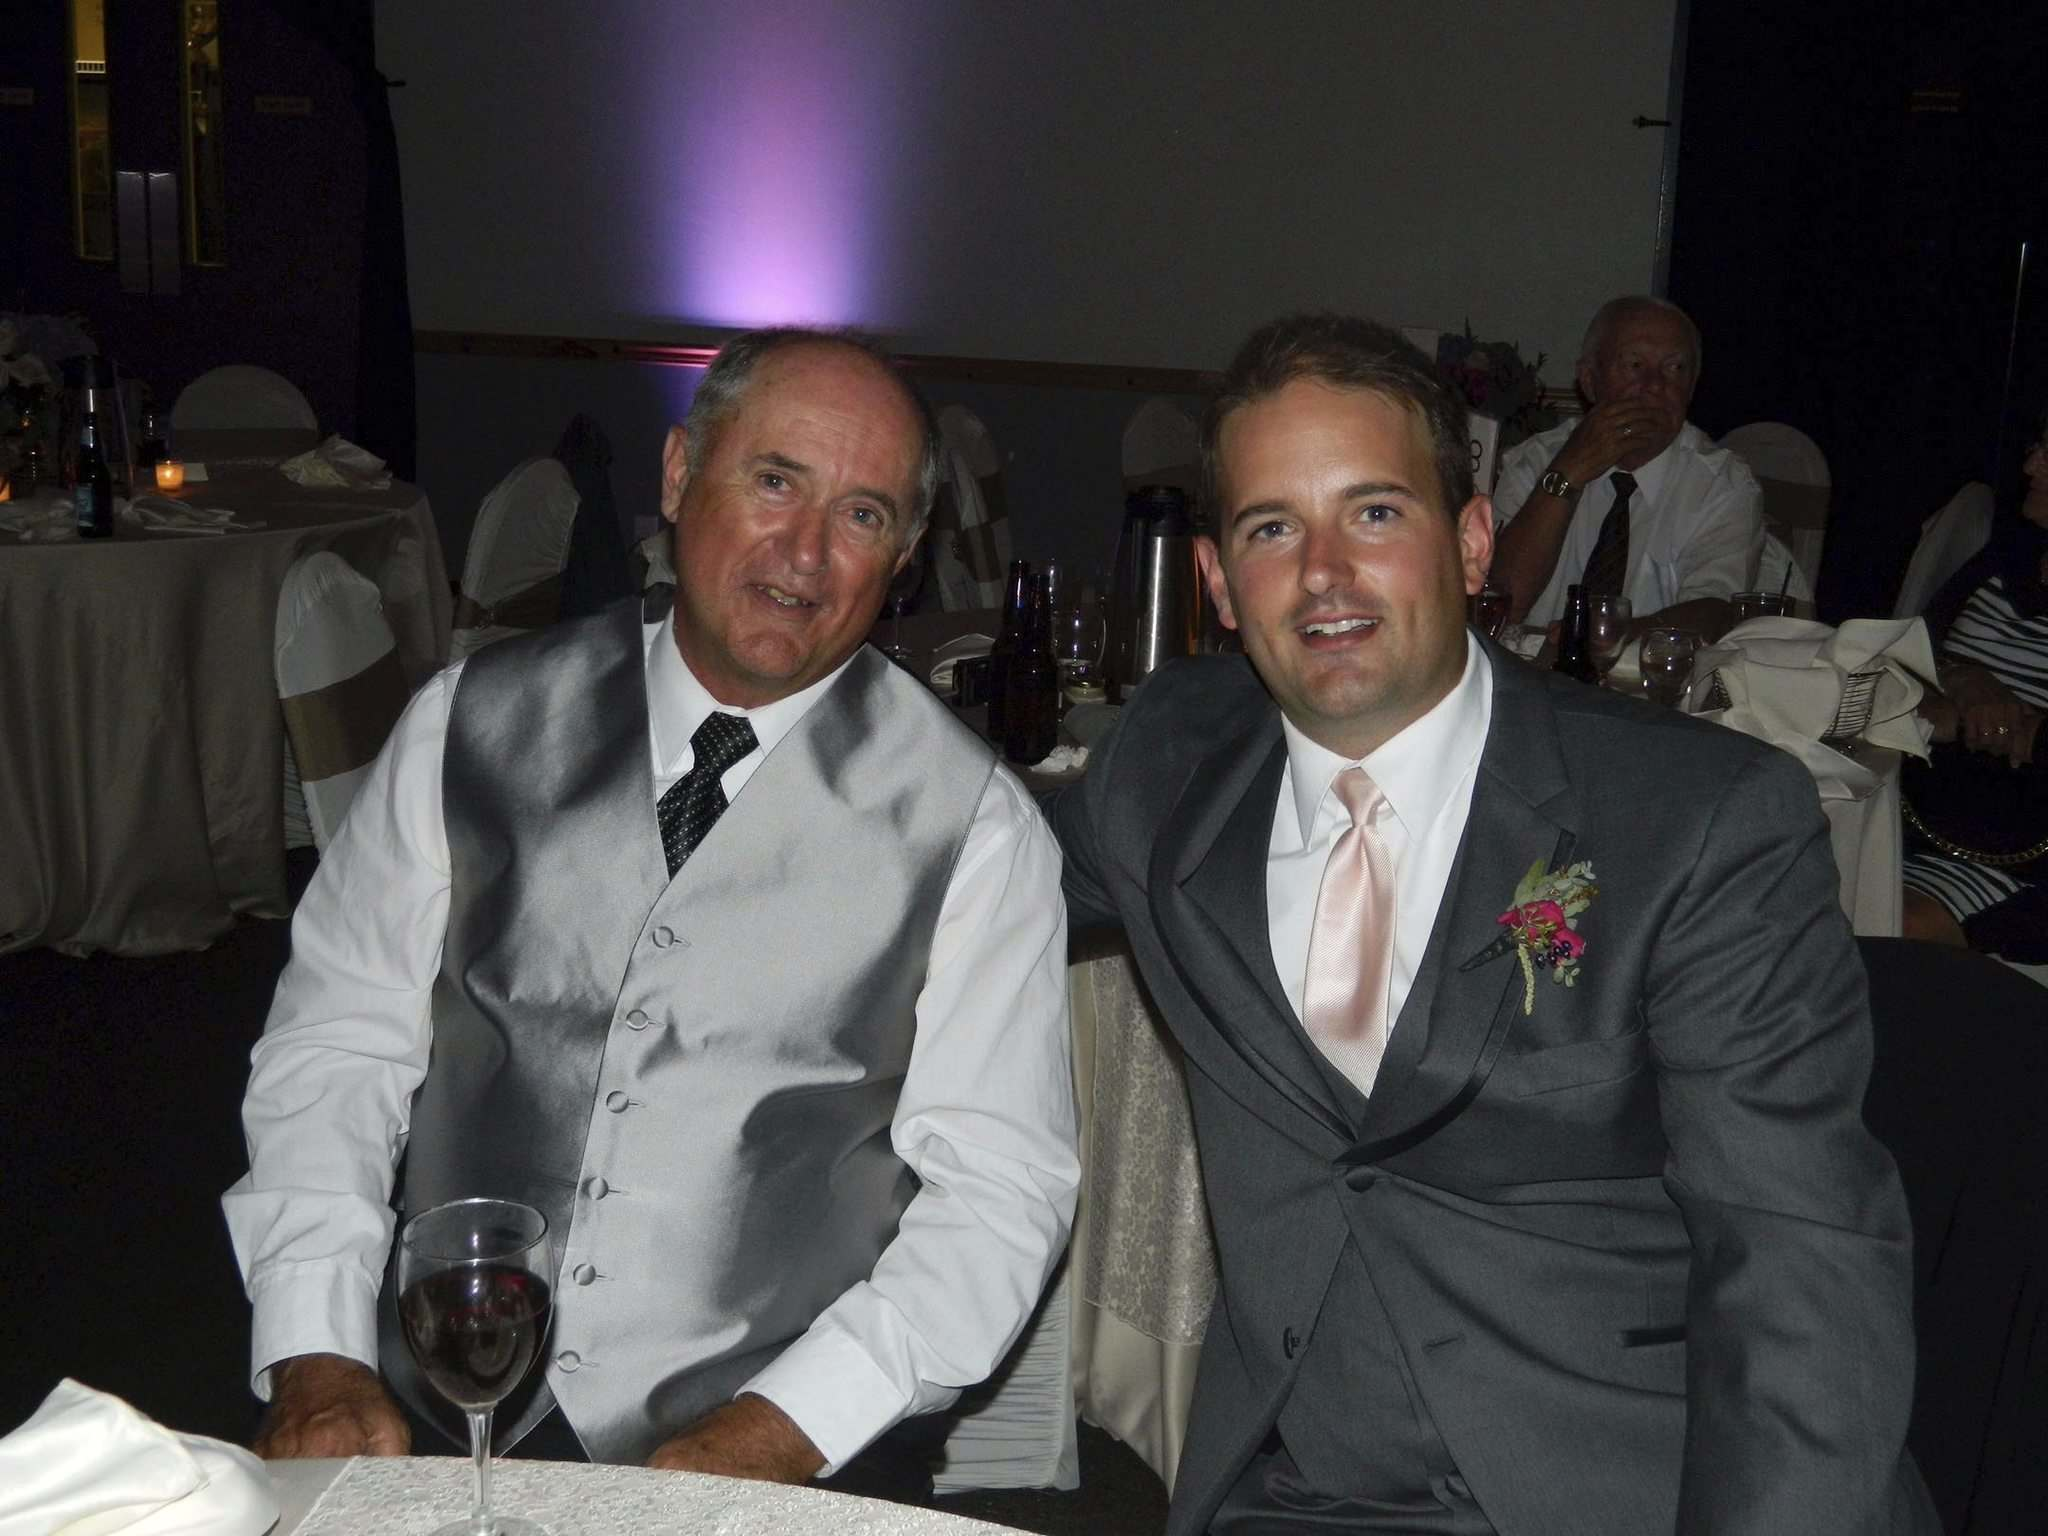 Robin Carruthers (right) and son, Reid. (Supplied photo)